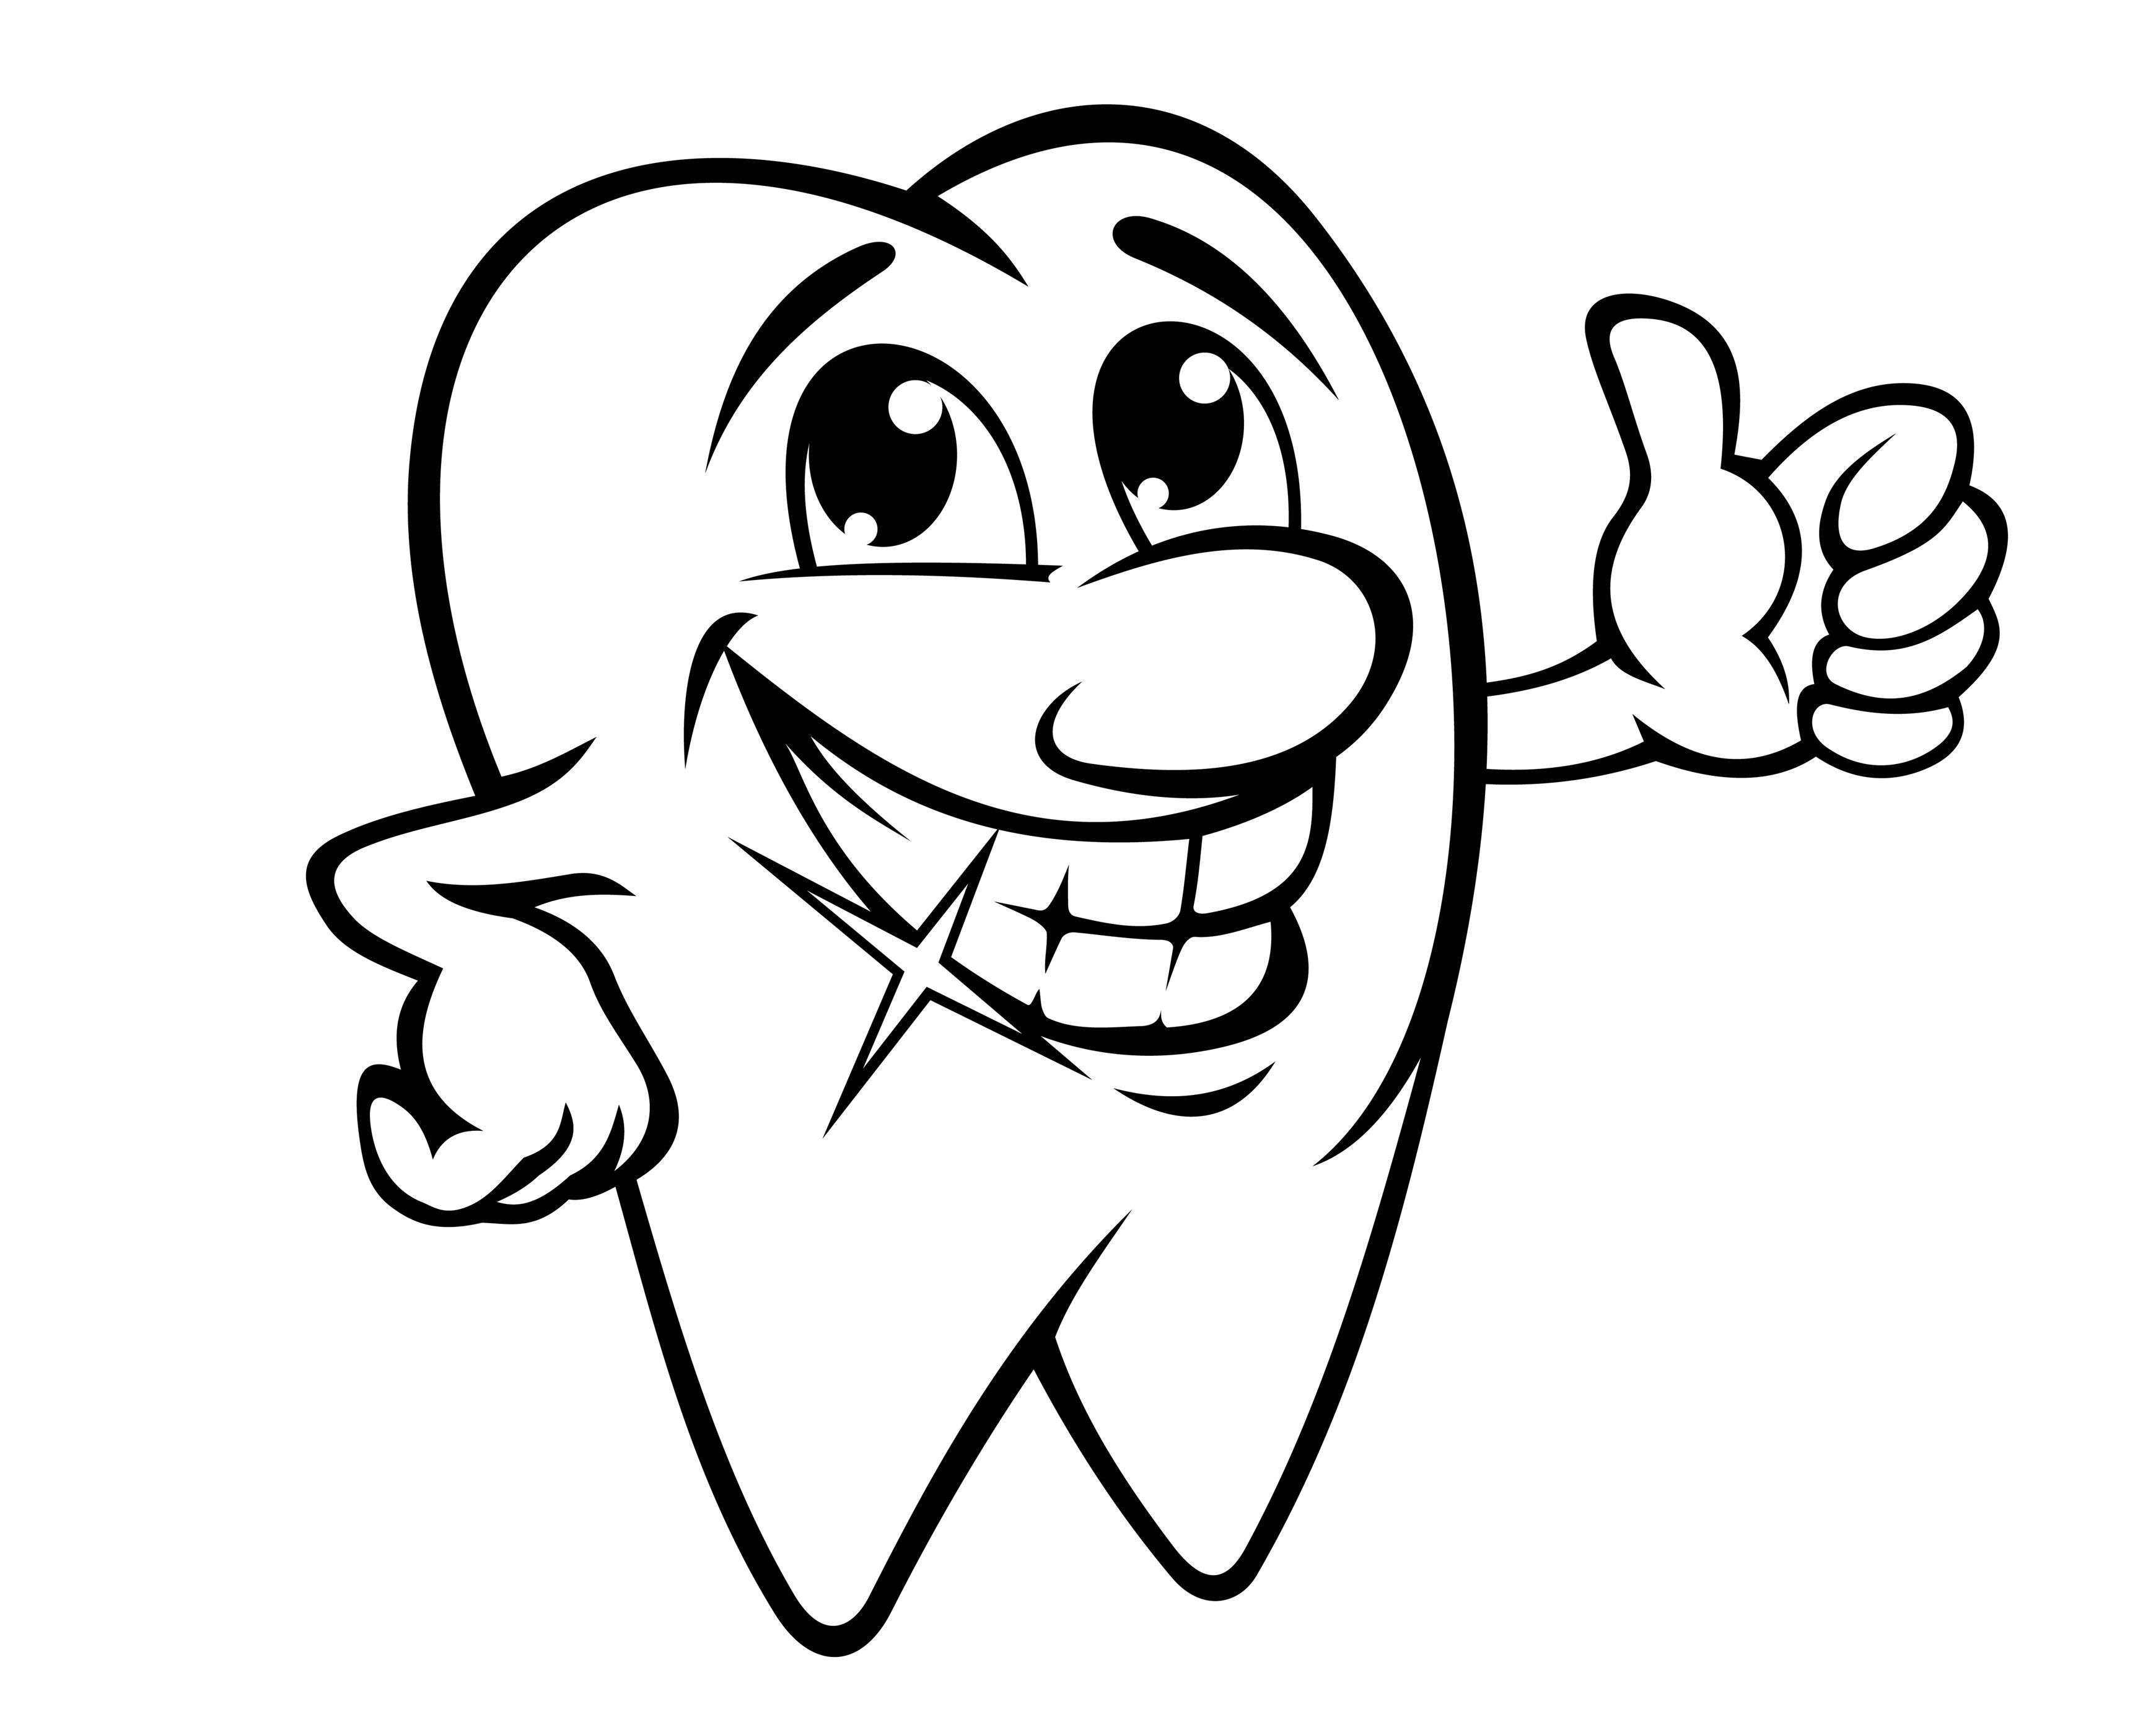 On Dentist Clipart Black And White Dental Happy Tooth 17.